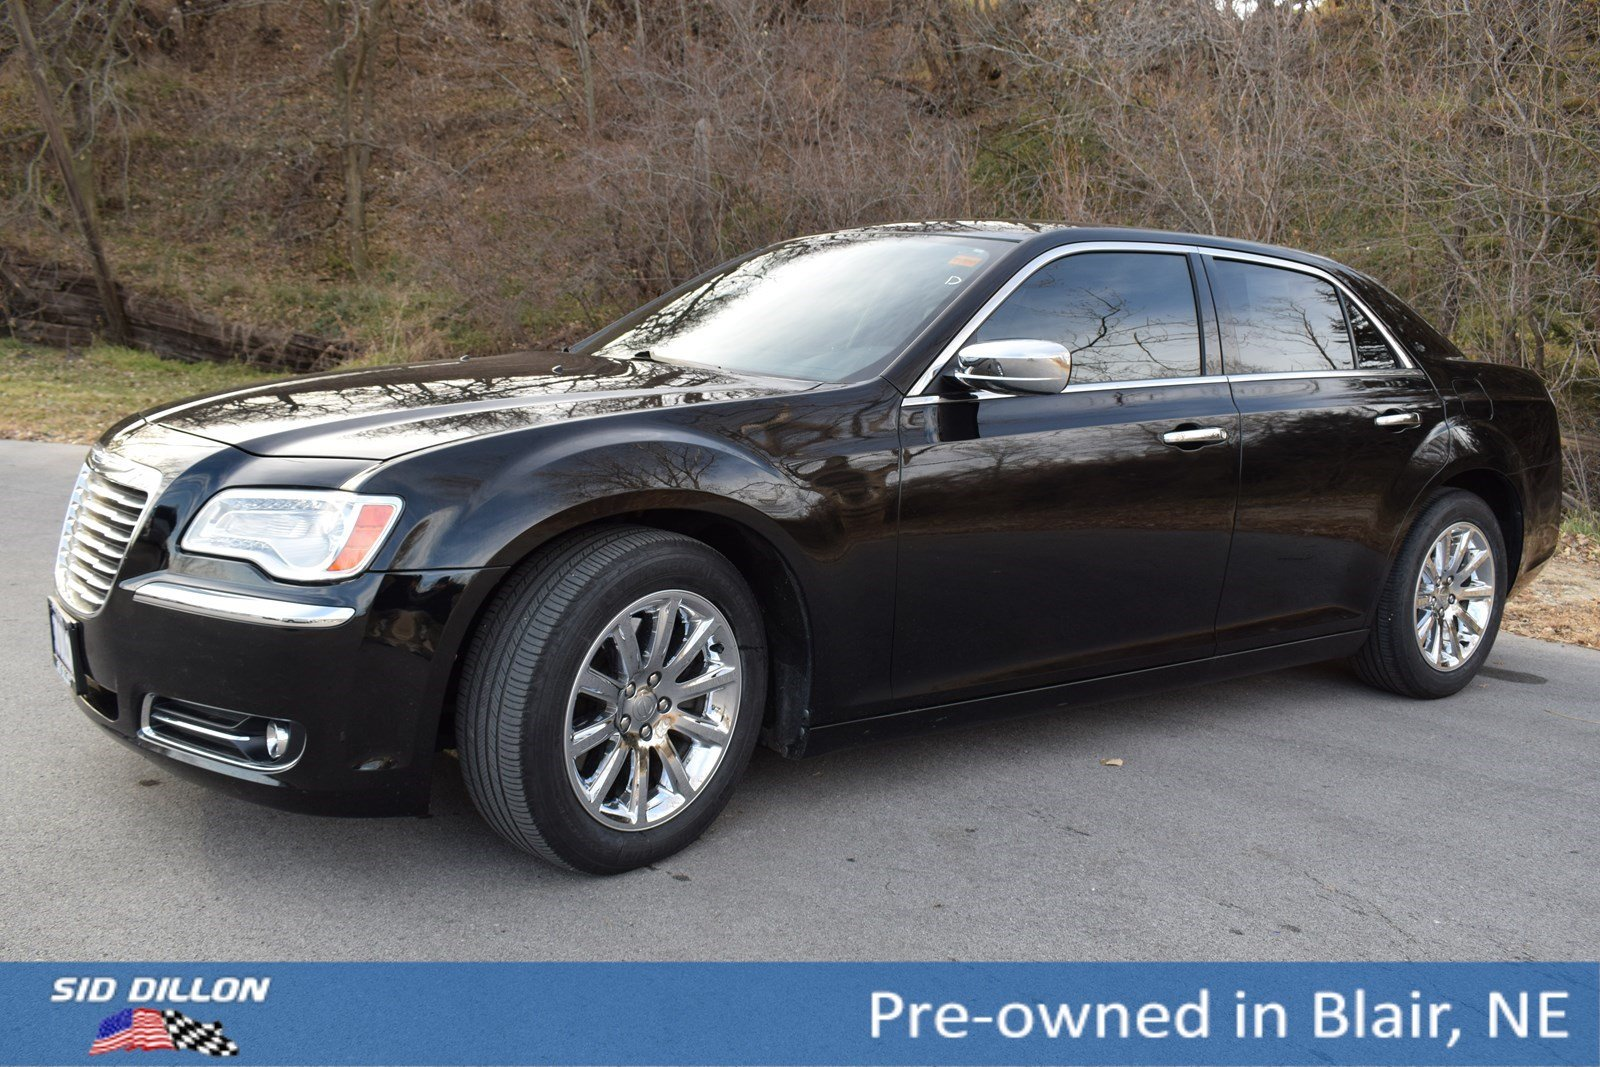 Pre Owned 2012 Chrysler 300 300c 4 Door Sedan In Blair